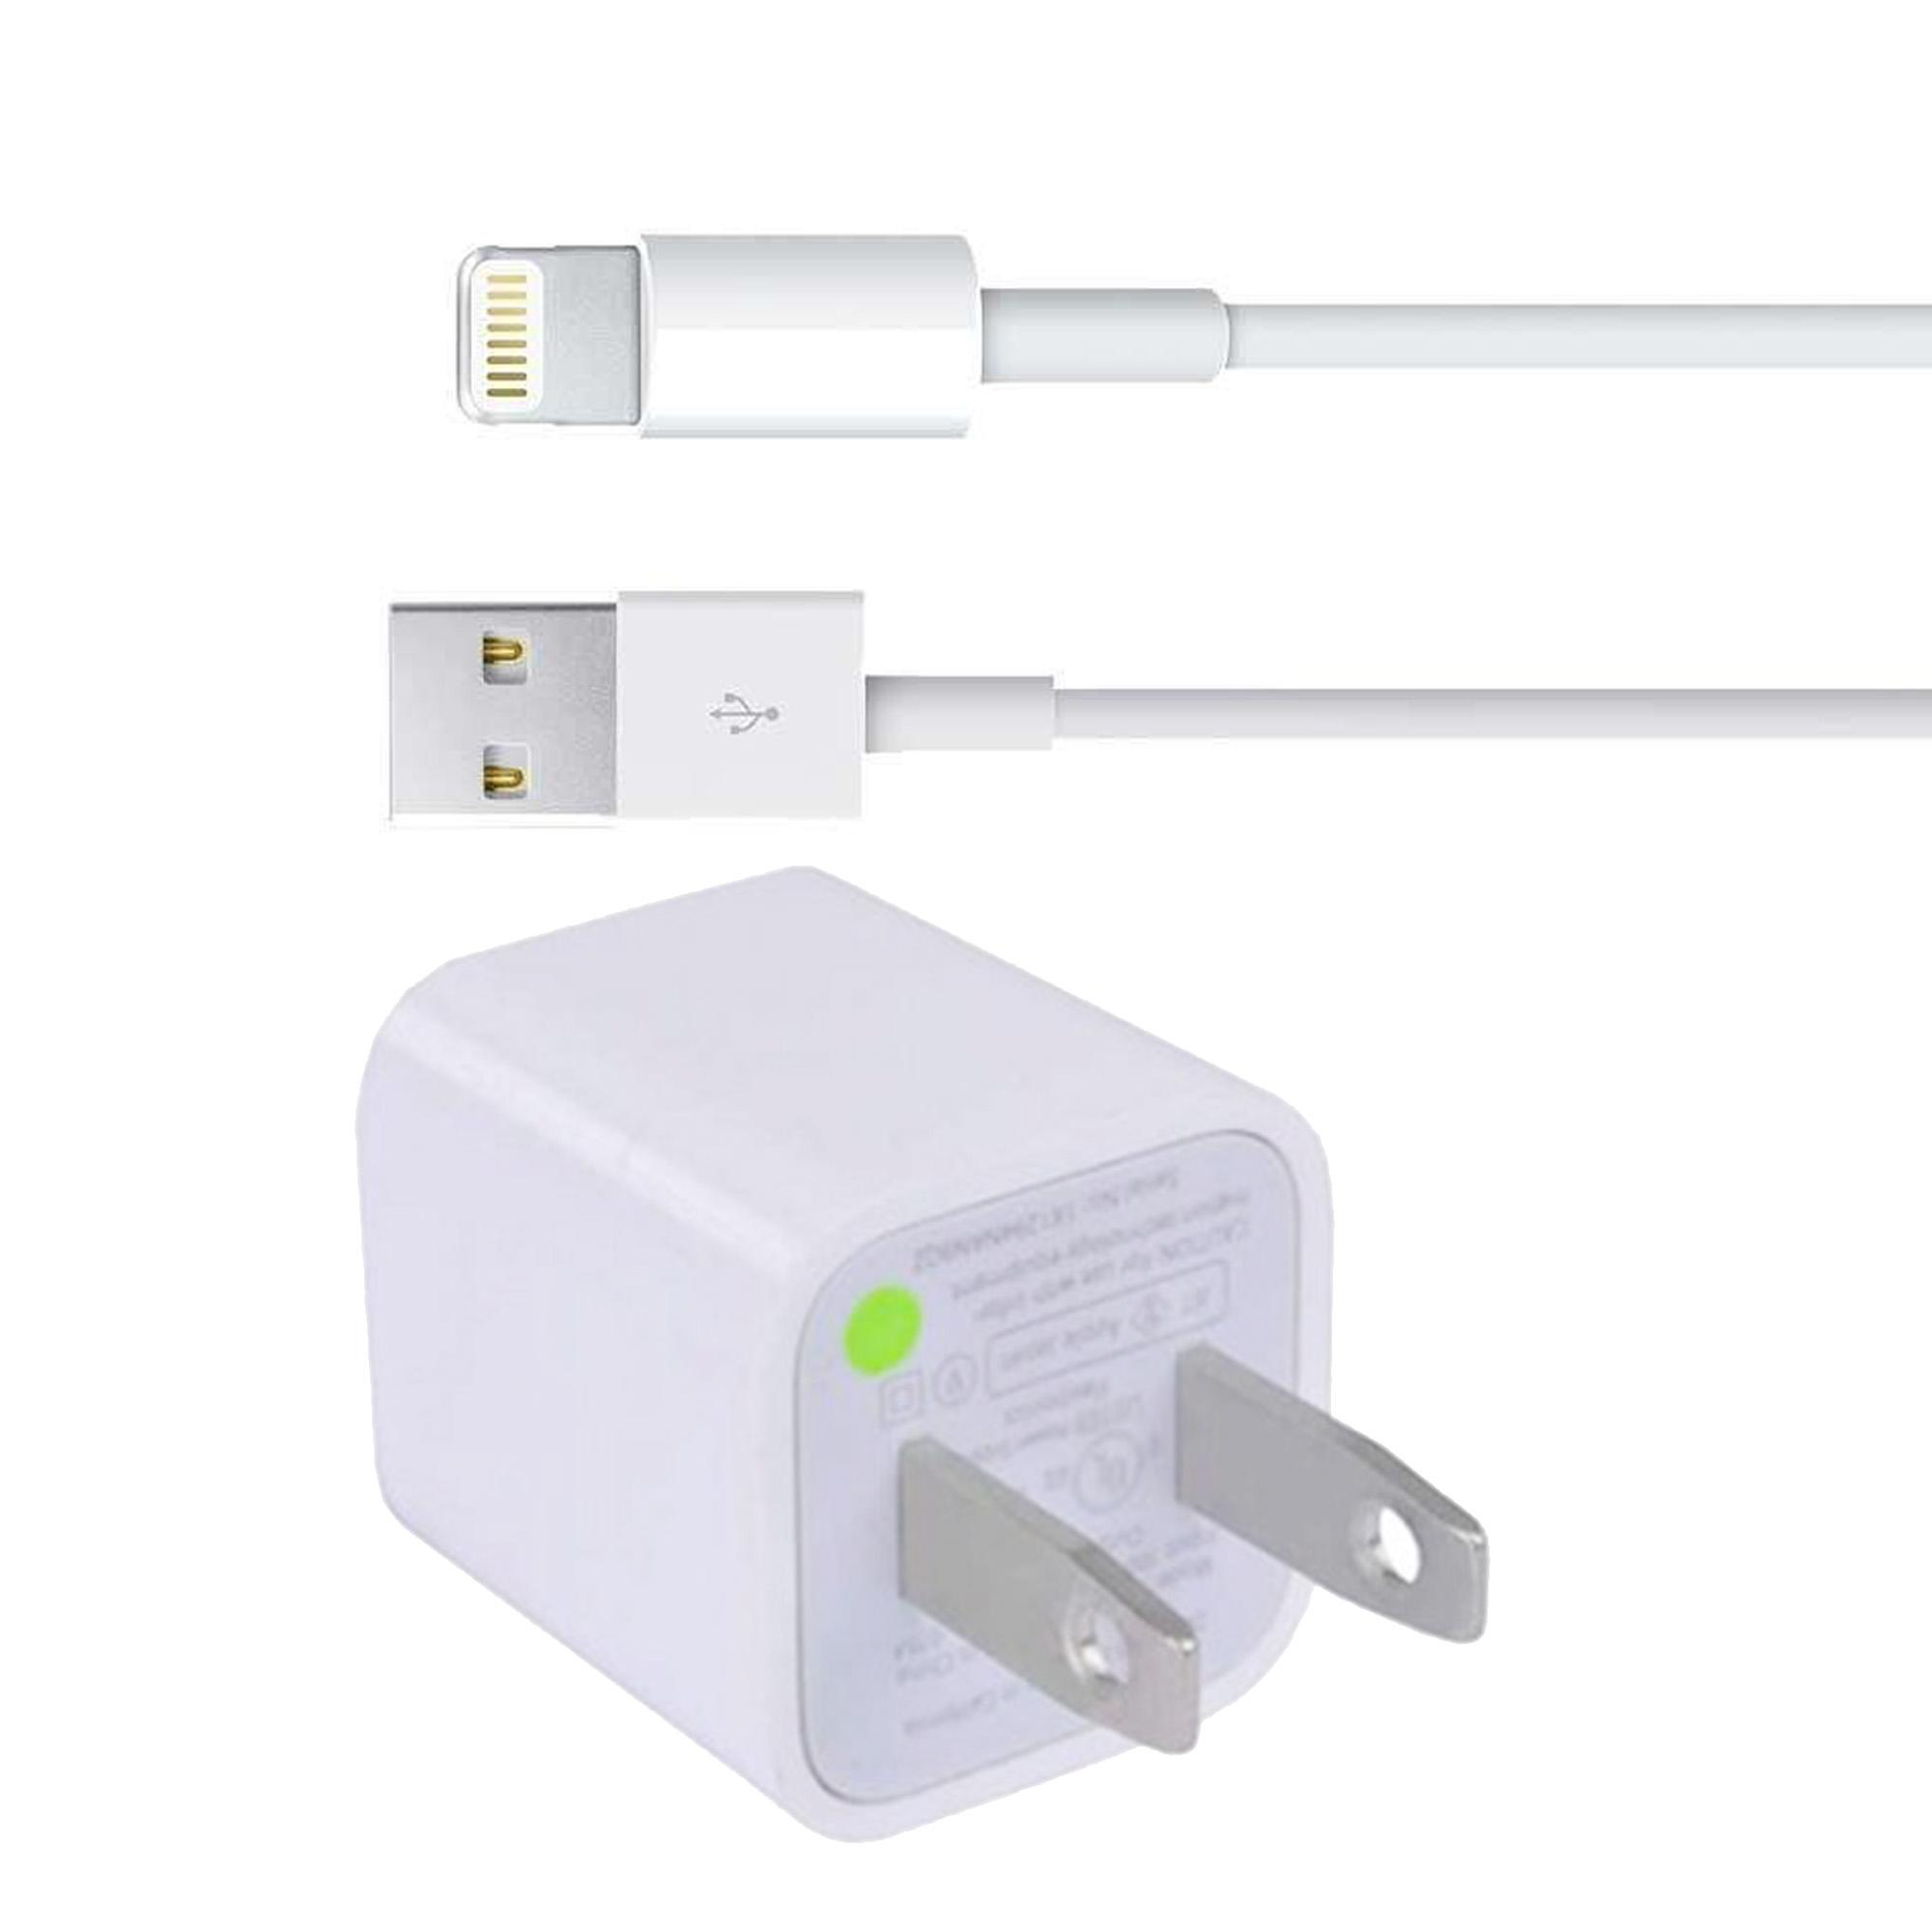 Original Apple 5W Charger with Lightning Cable for iPhone 5/5c/6/6+/7/7+ - 3